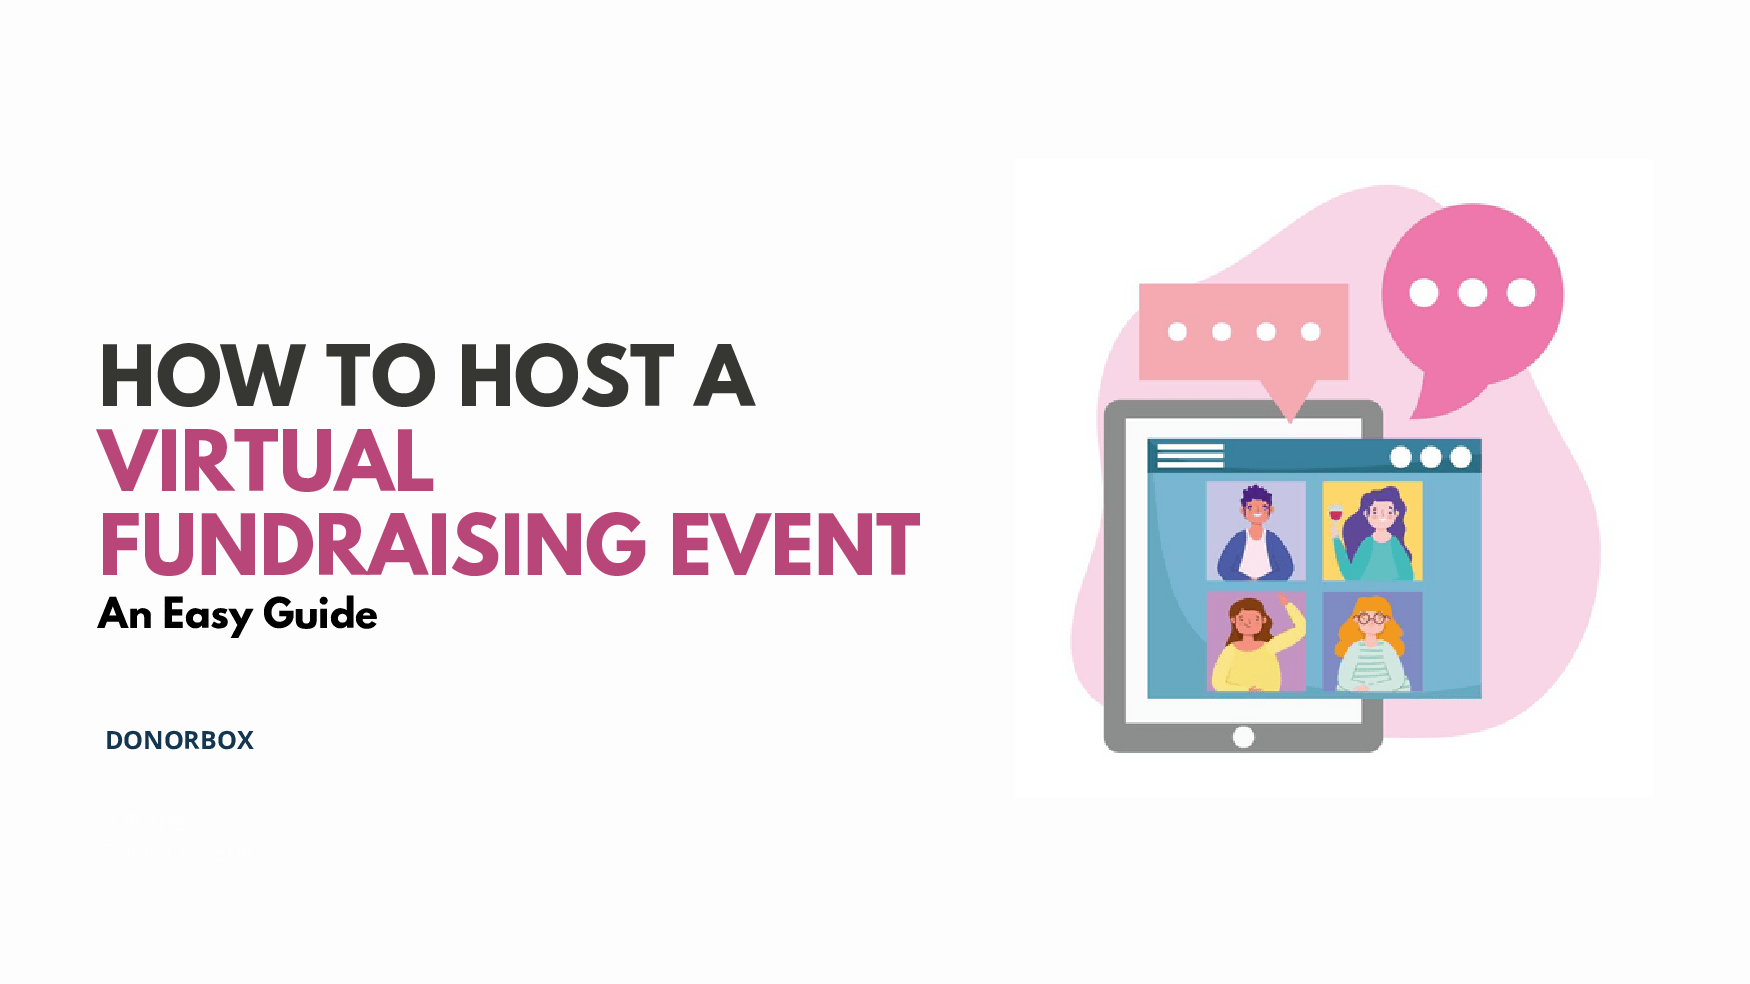 host a virtual fundraising event